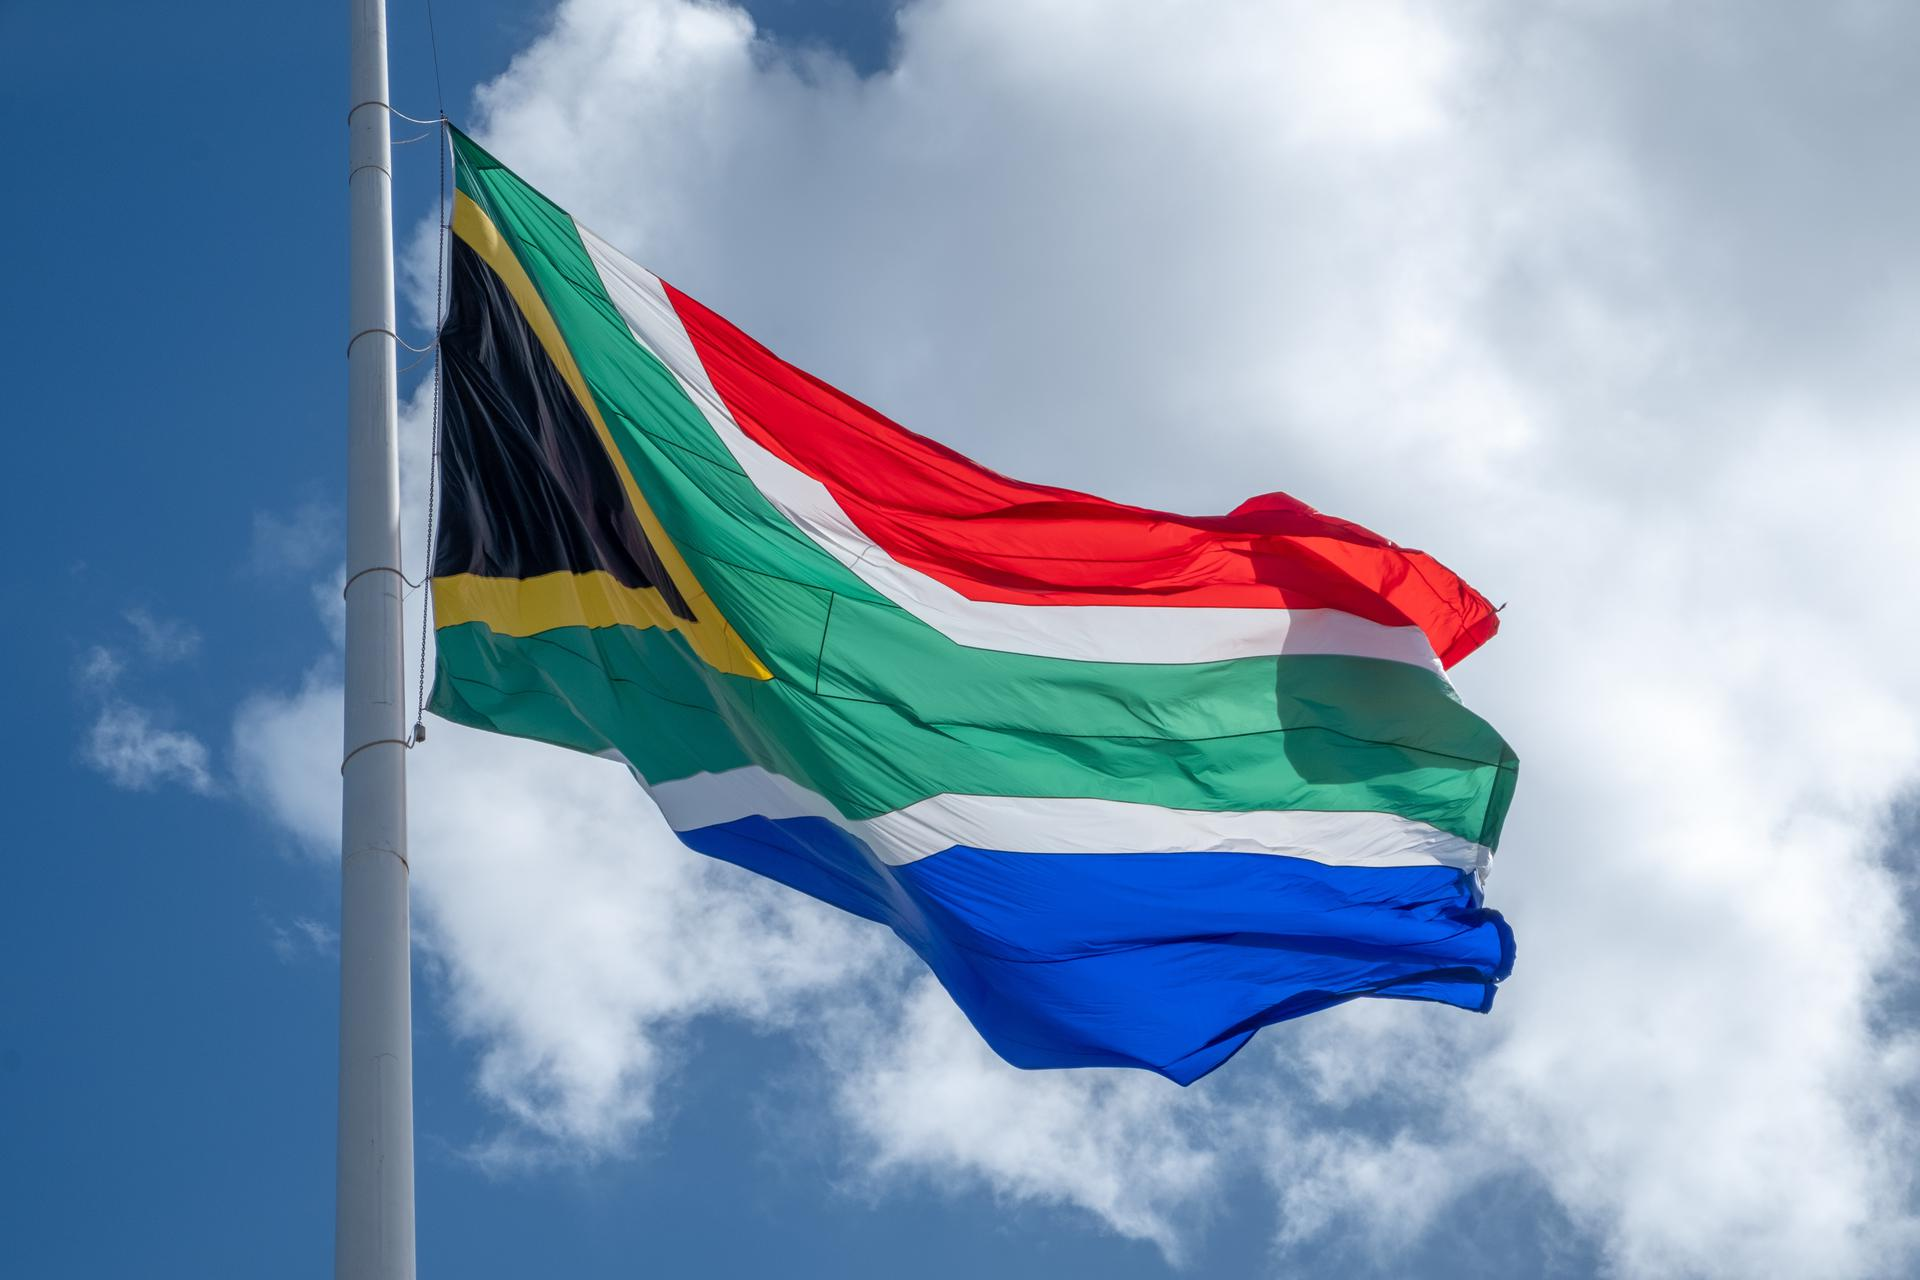 Localised unrest and looting in South Africa